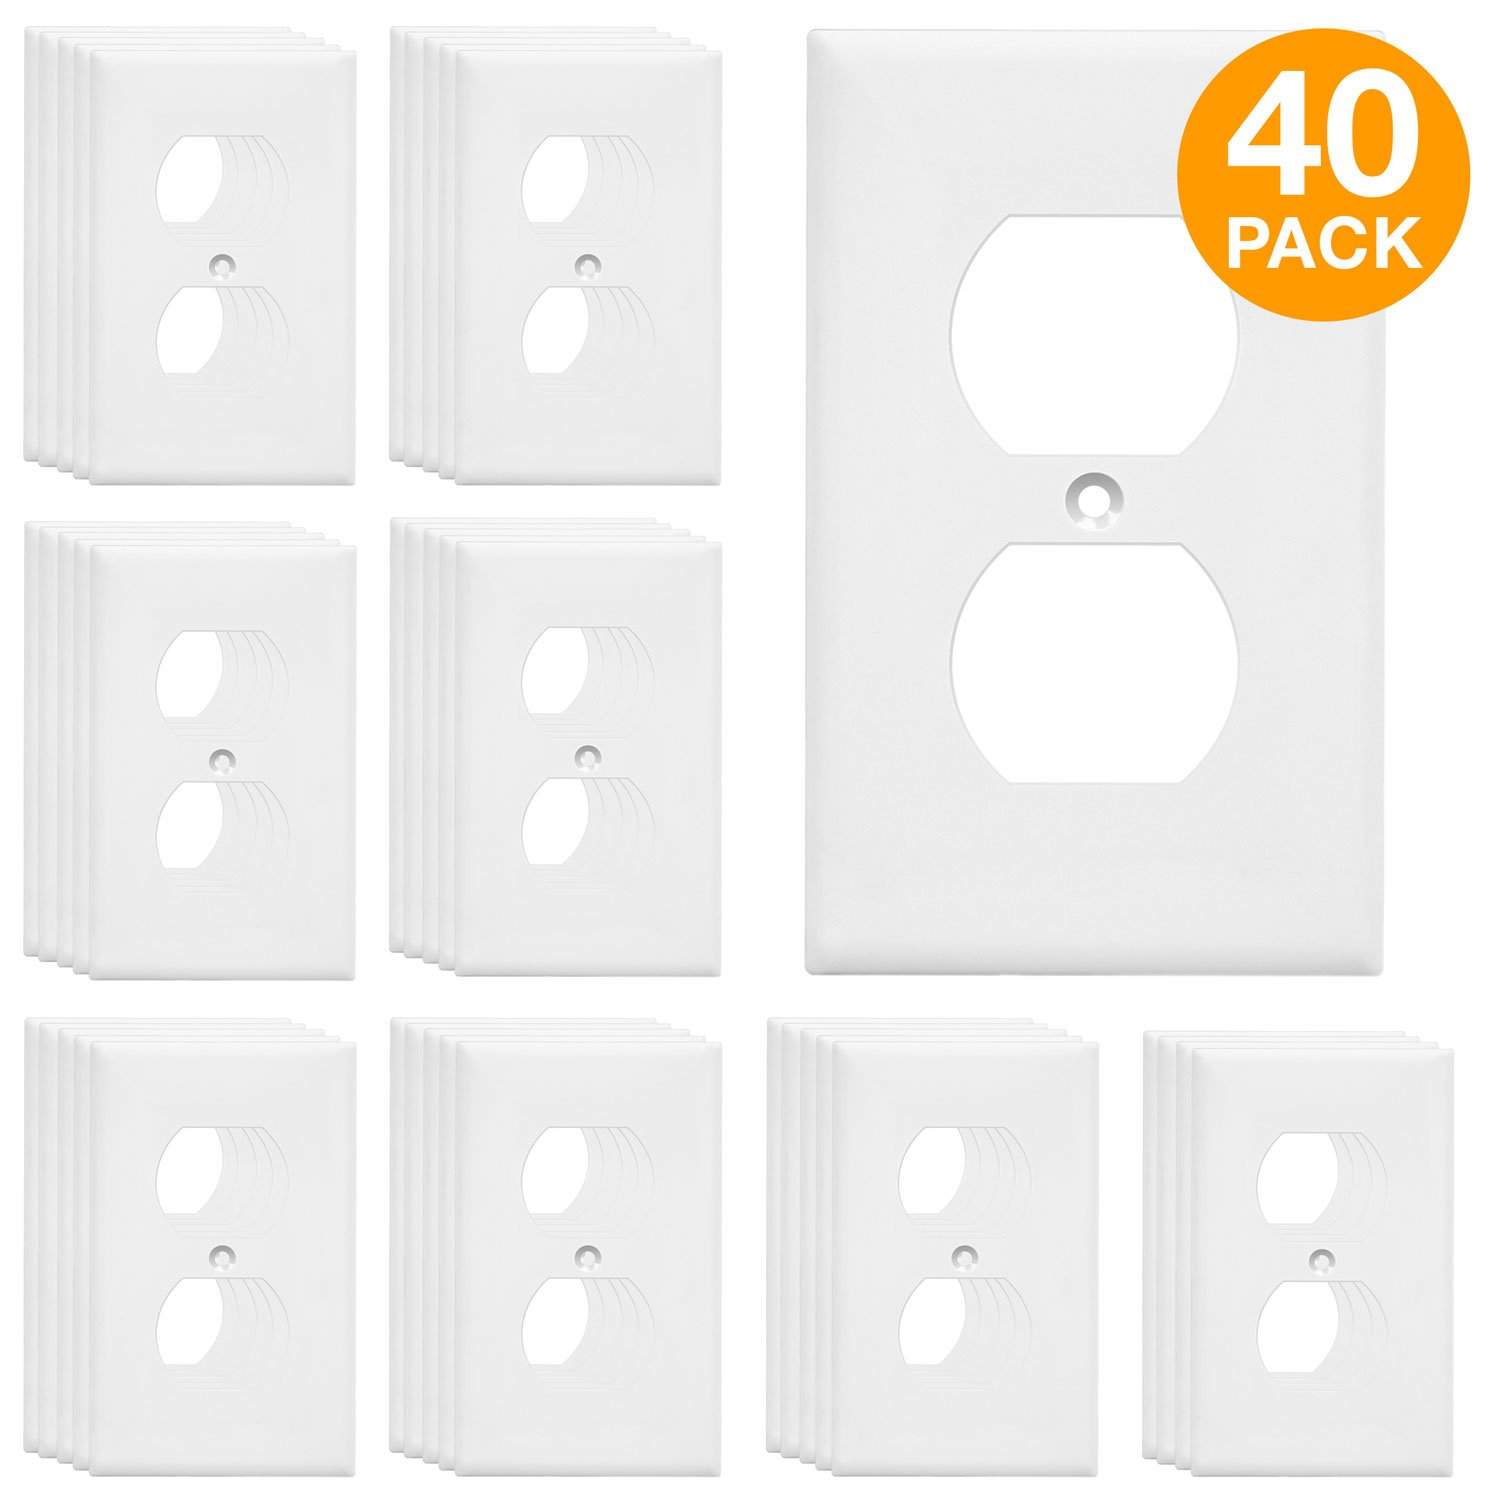 ENERLITES Duplex Receptacle Outlet Wall Plate, Size 1-Gang 4.50'' x 2.76'', Polycarbonate Thermoplastic, 8821-W-40PCS, White (40 Pack)